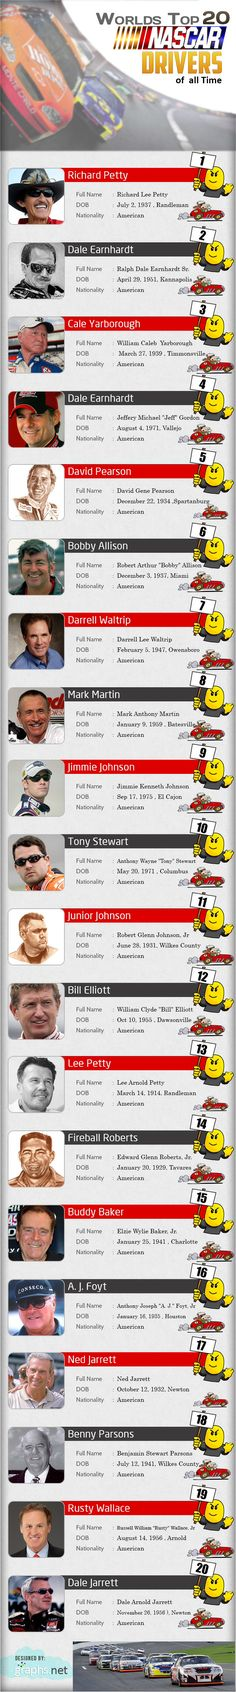 Image from http://graphs.net/wp-content/uploads/2013/05/Worlds-Top-20-Nascar-Drivers-of-all-Time.jpg.